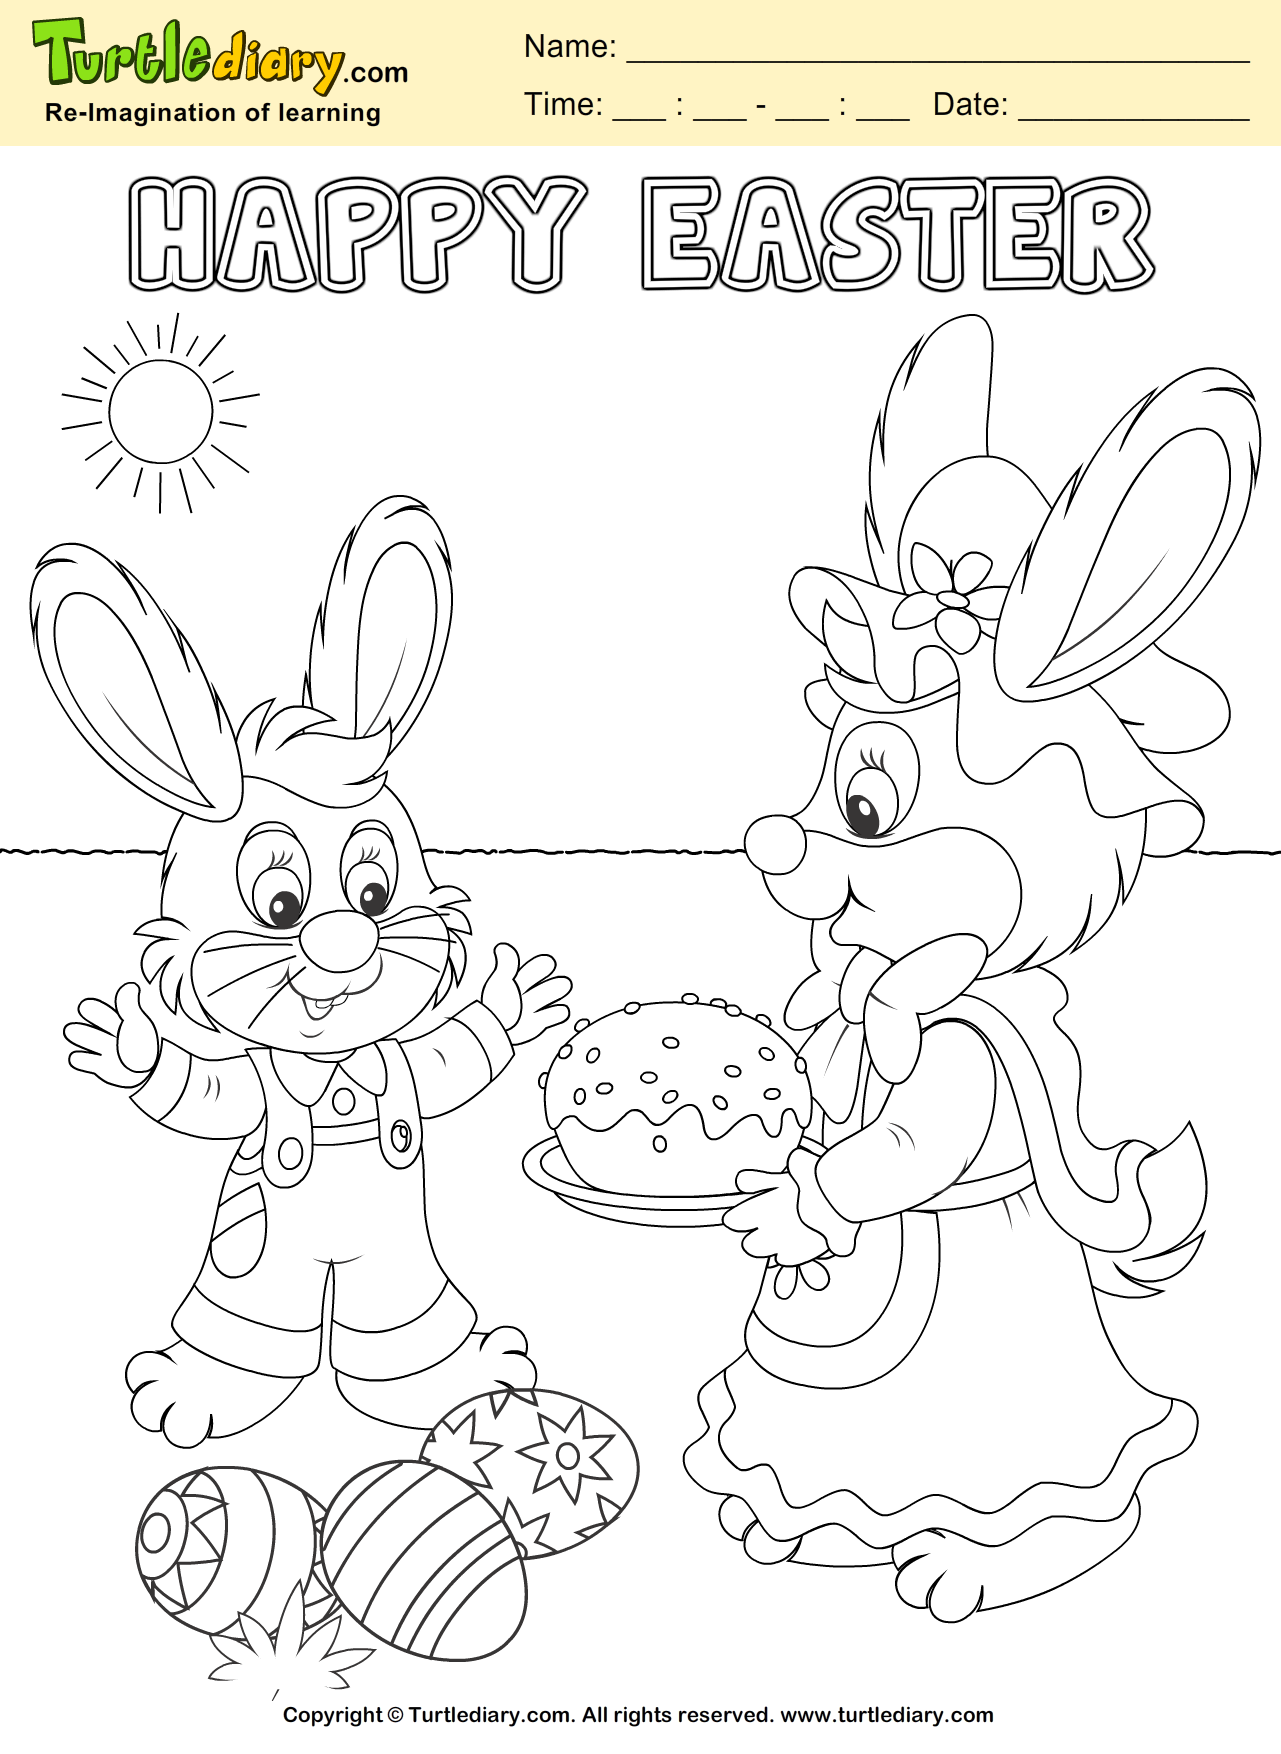 Bunny and Easter Egg Coloring Page | aa velka noc | Pinterest ...